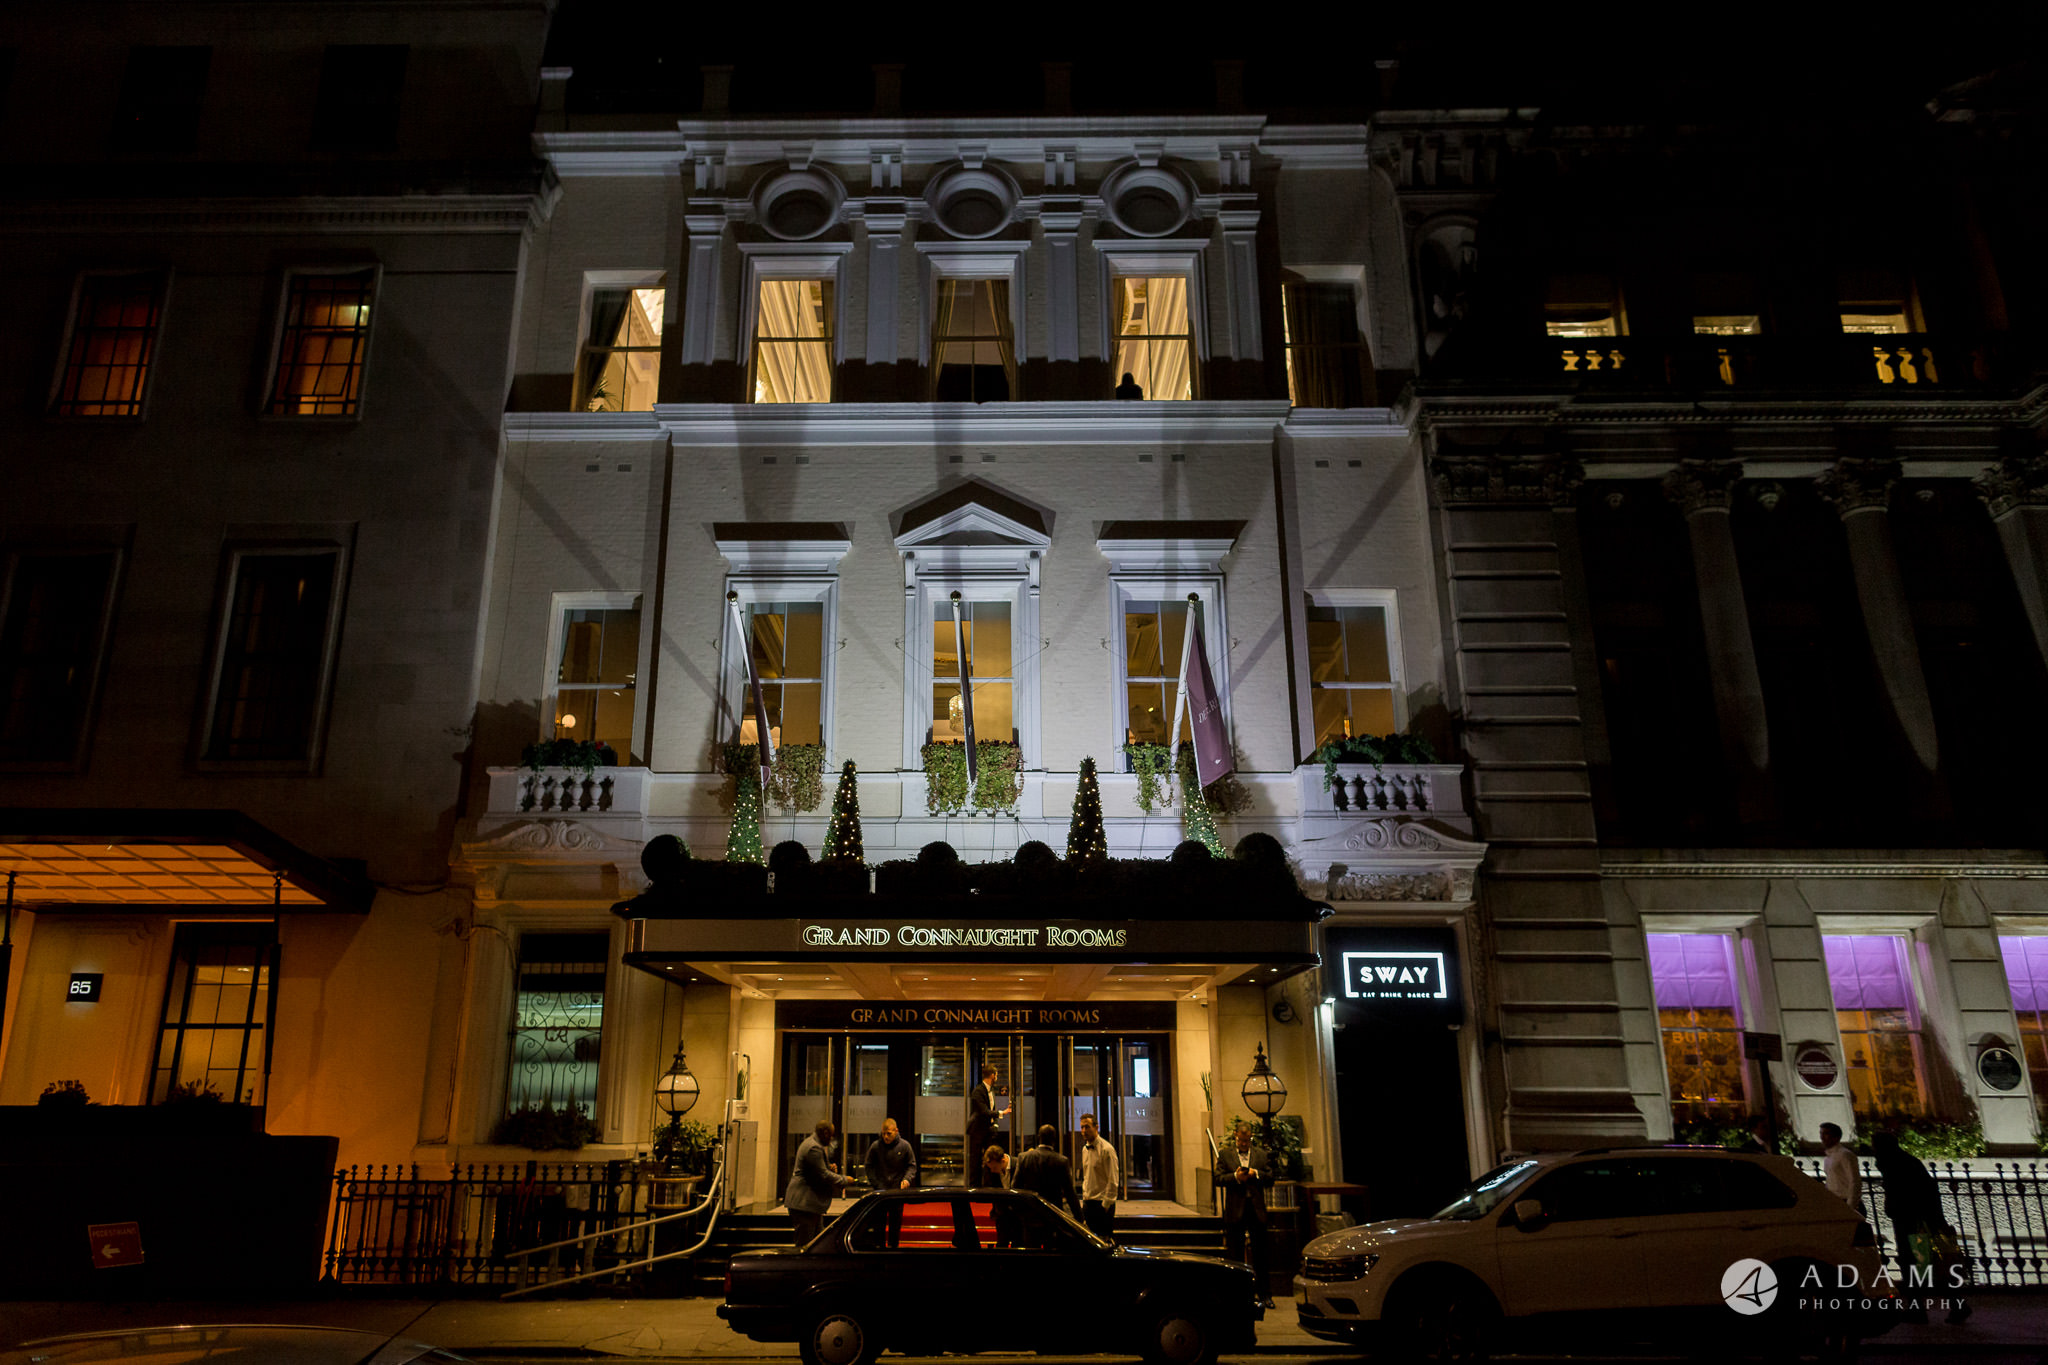 Grand connaught rooms wedding venue view from outside in the evening